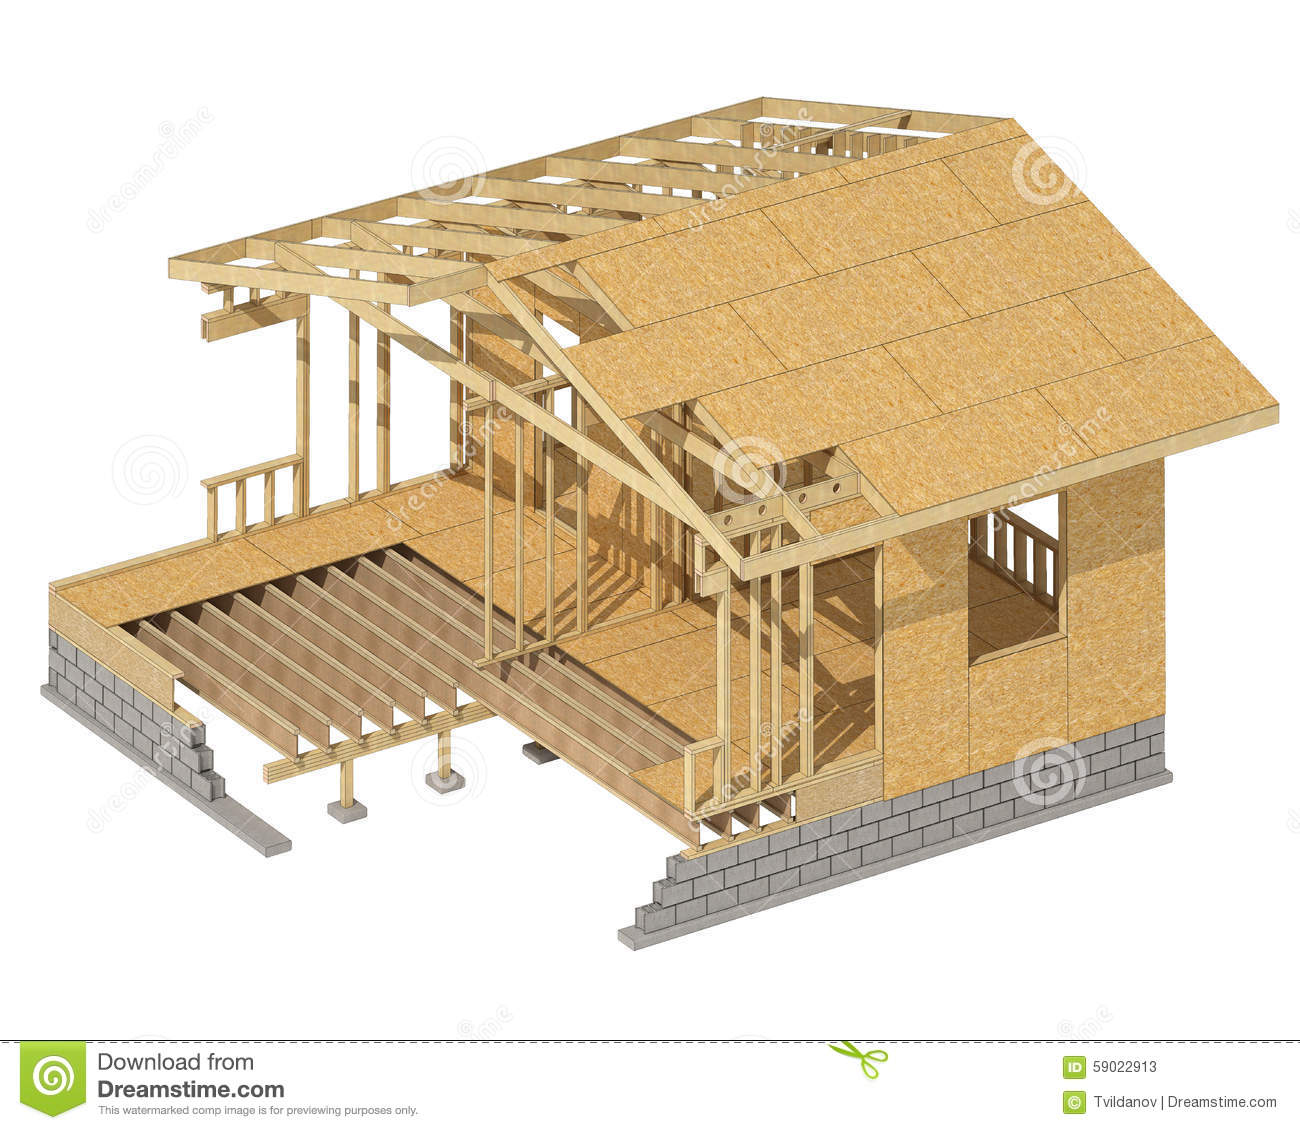 New residential construction home wood framing stock for House plans timber frame construction